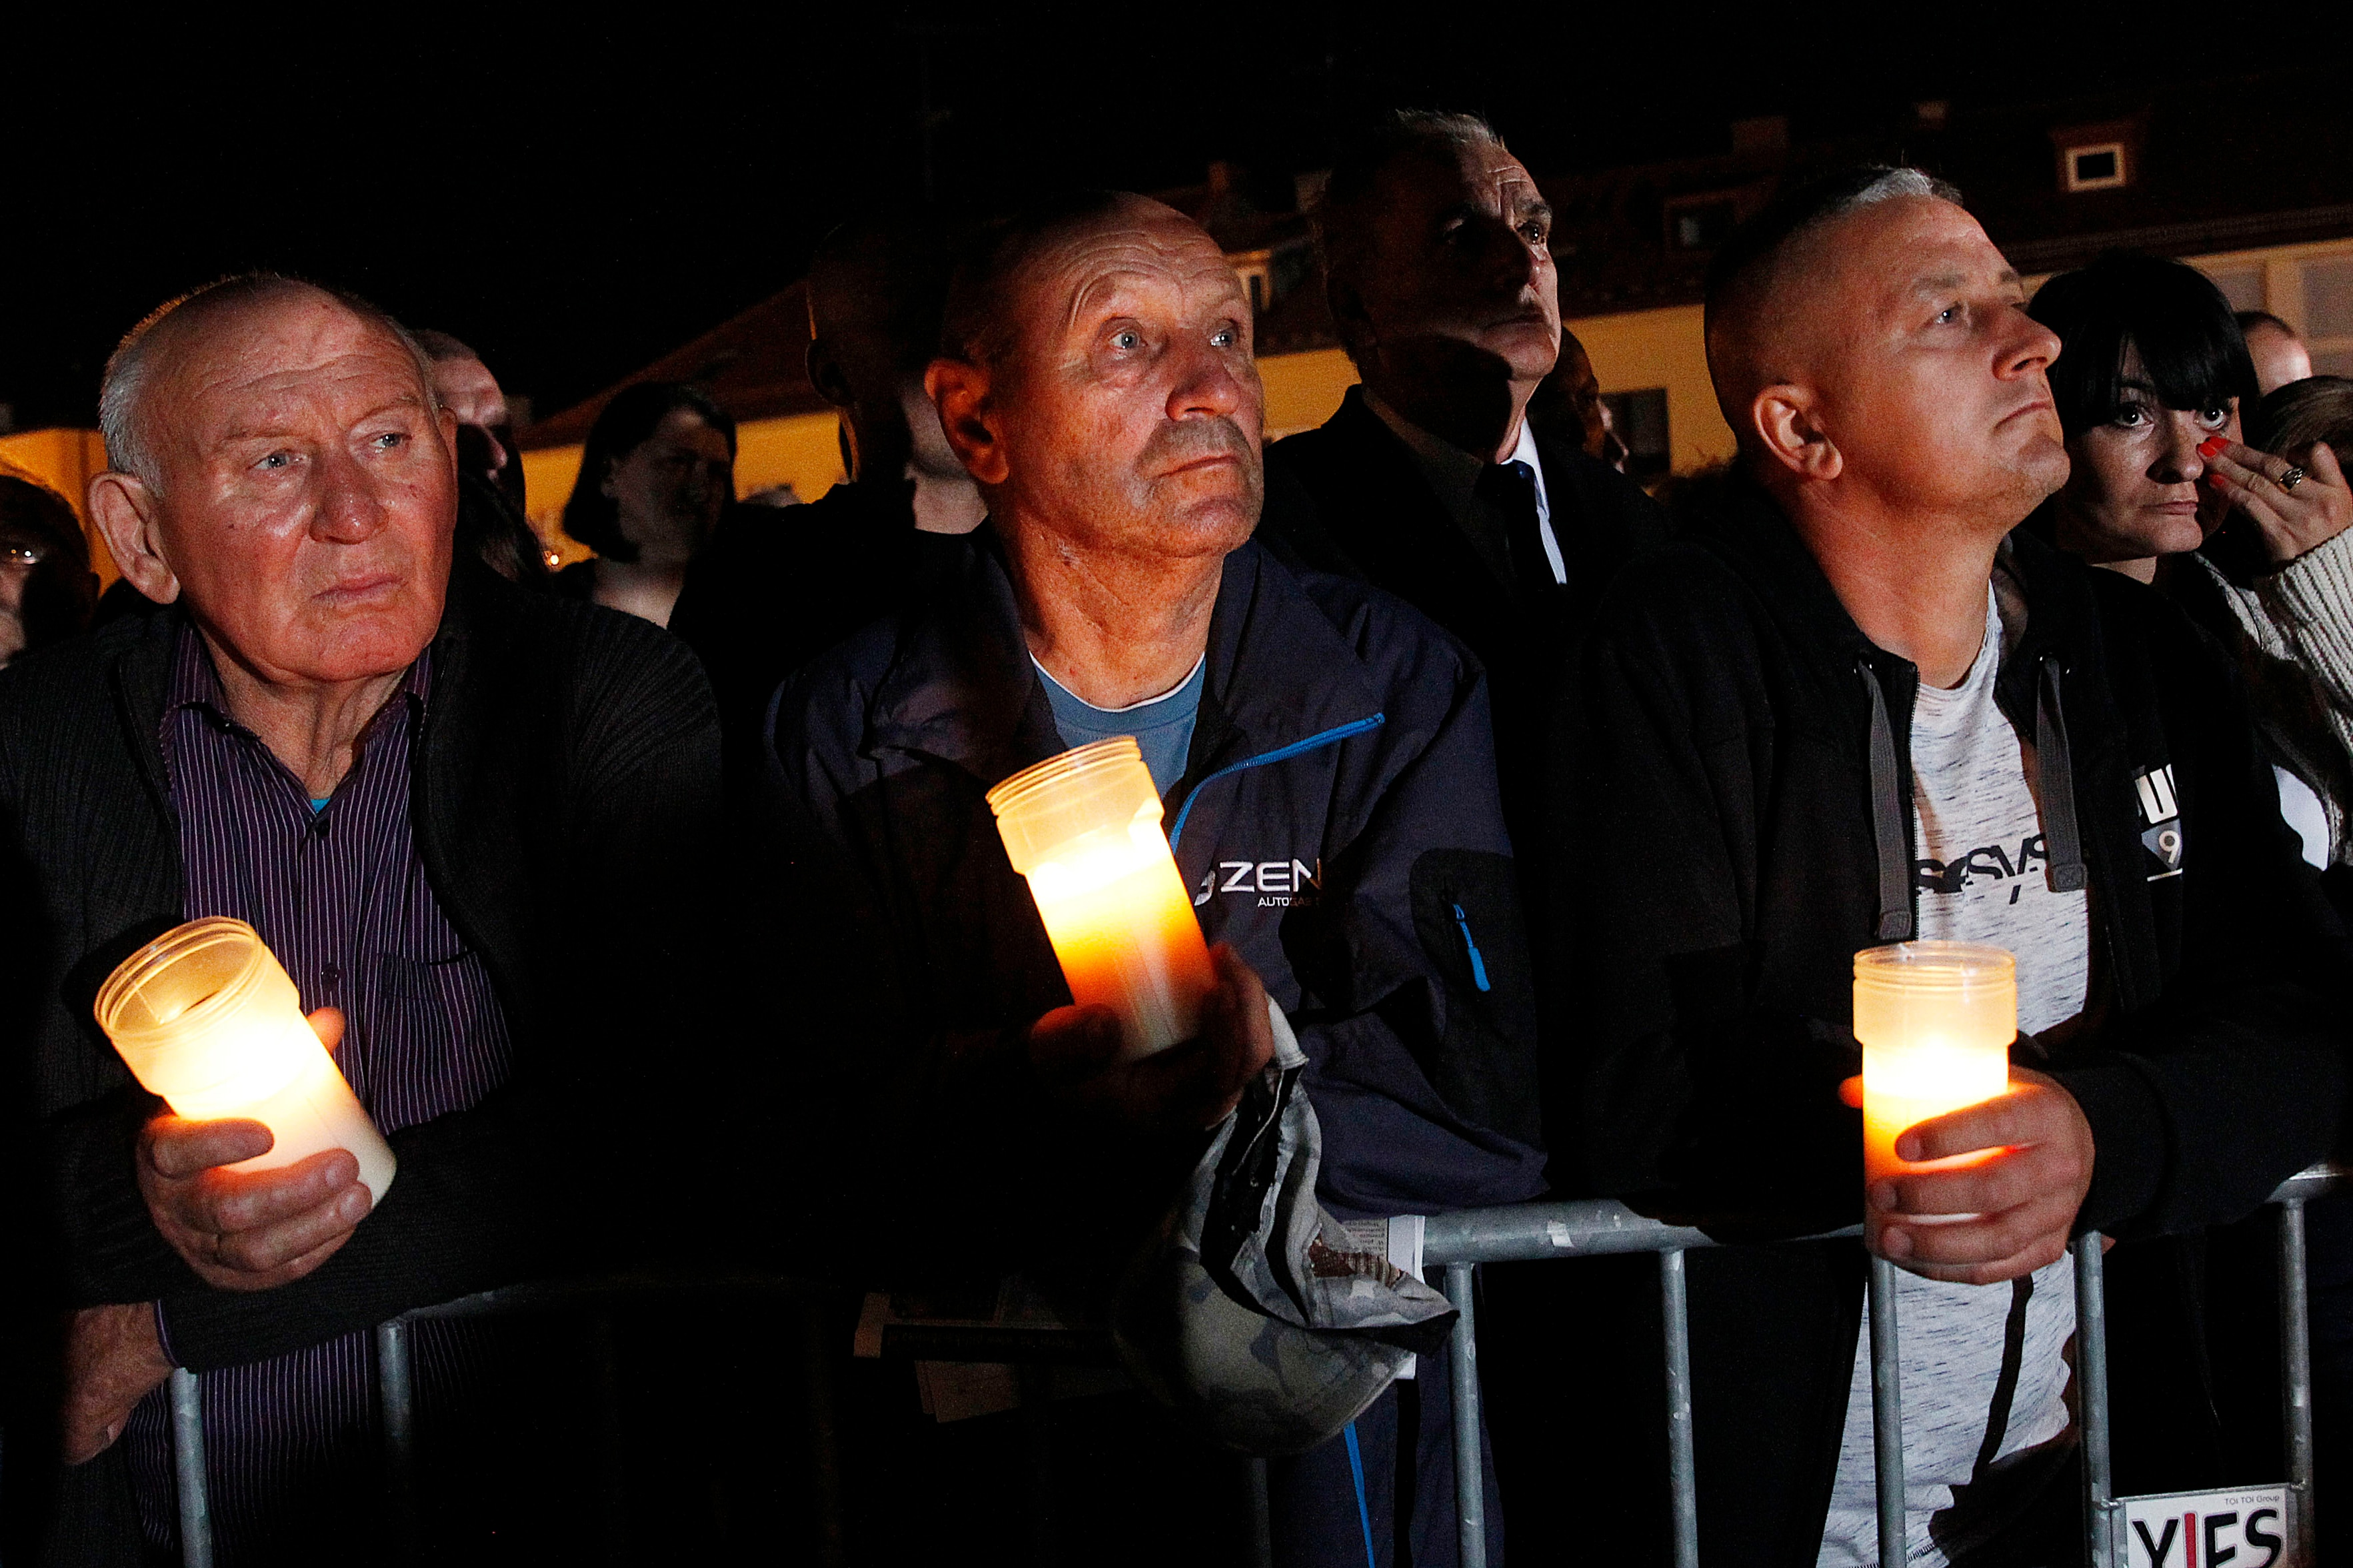 Spectators hold candles in their hands at the memorial service during ceremony marking 80th anniversary of World War II.